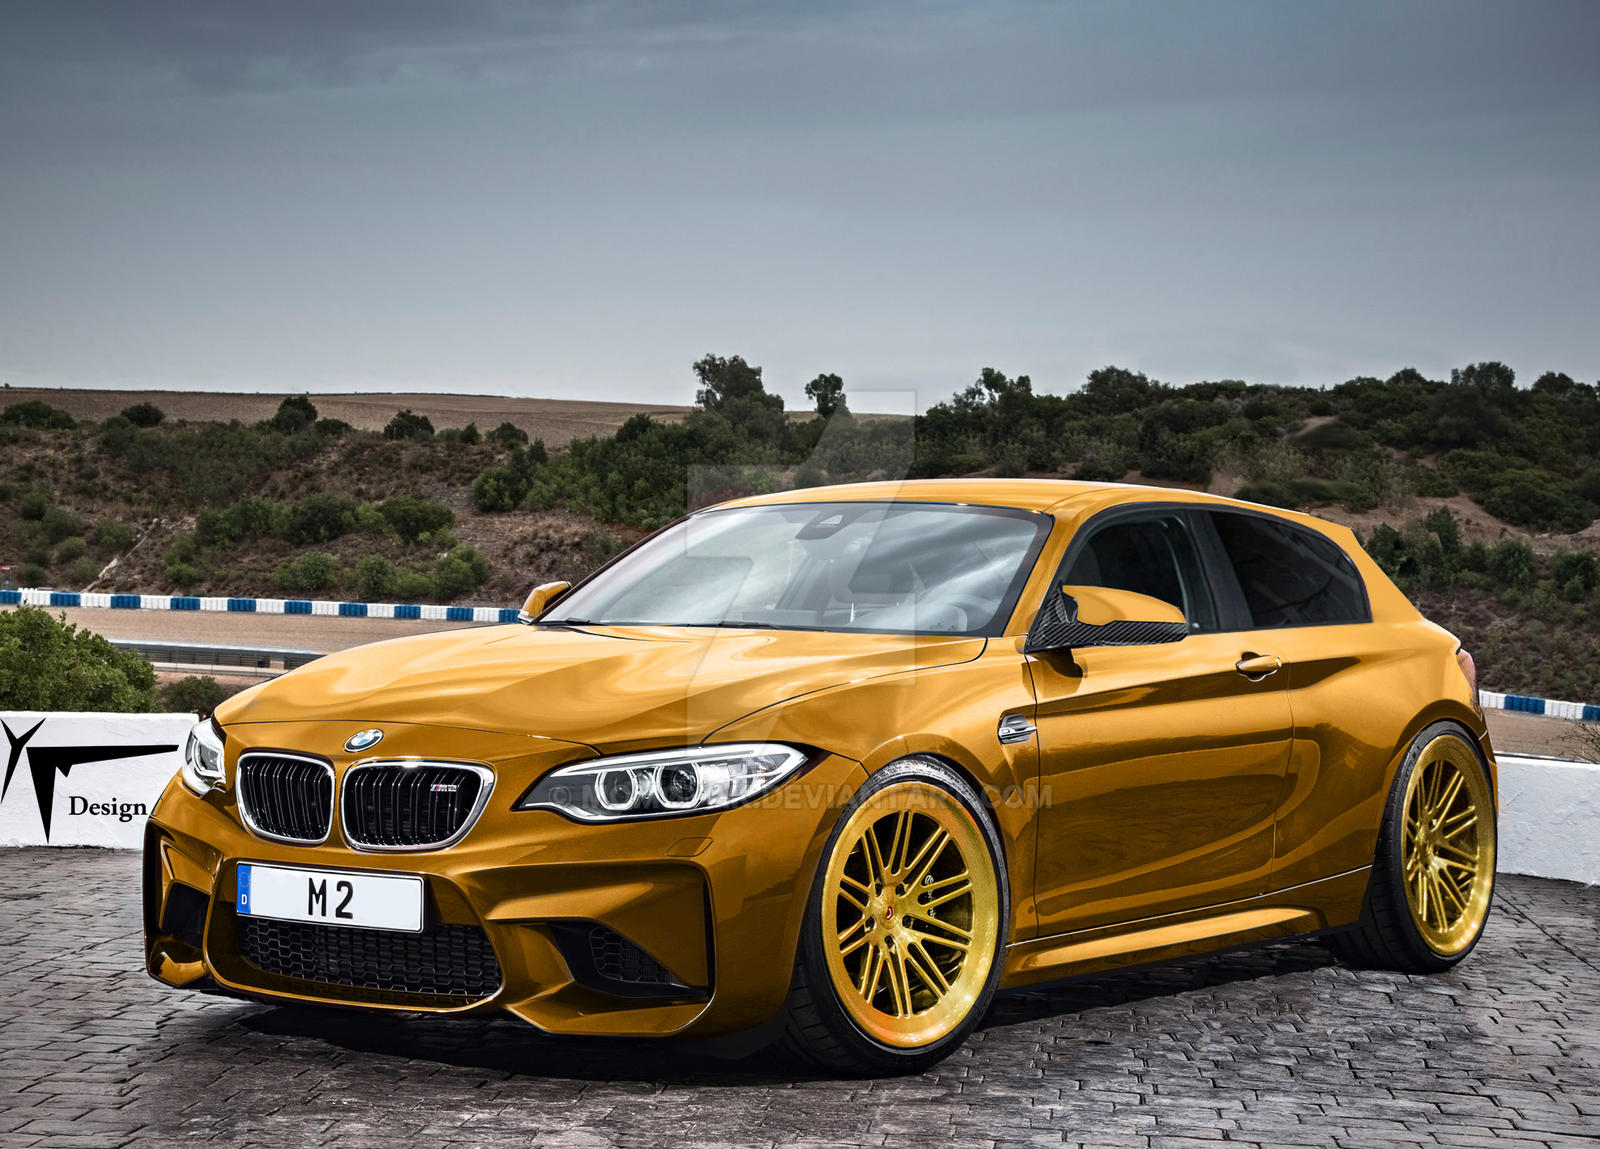 bmw f87 m2 shooting break gold by momoyak design by momoyak on deviantart. Black Bedroom Furniture Sets. Home Design Ideas